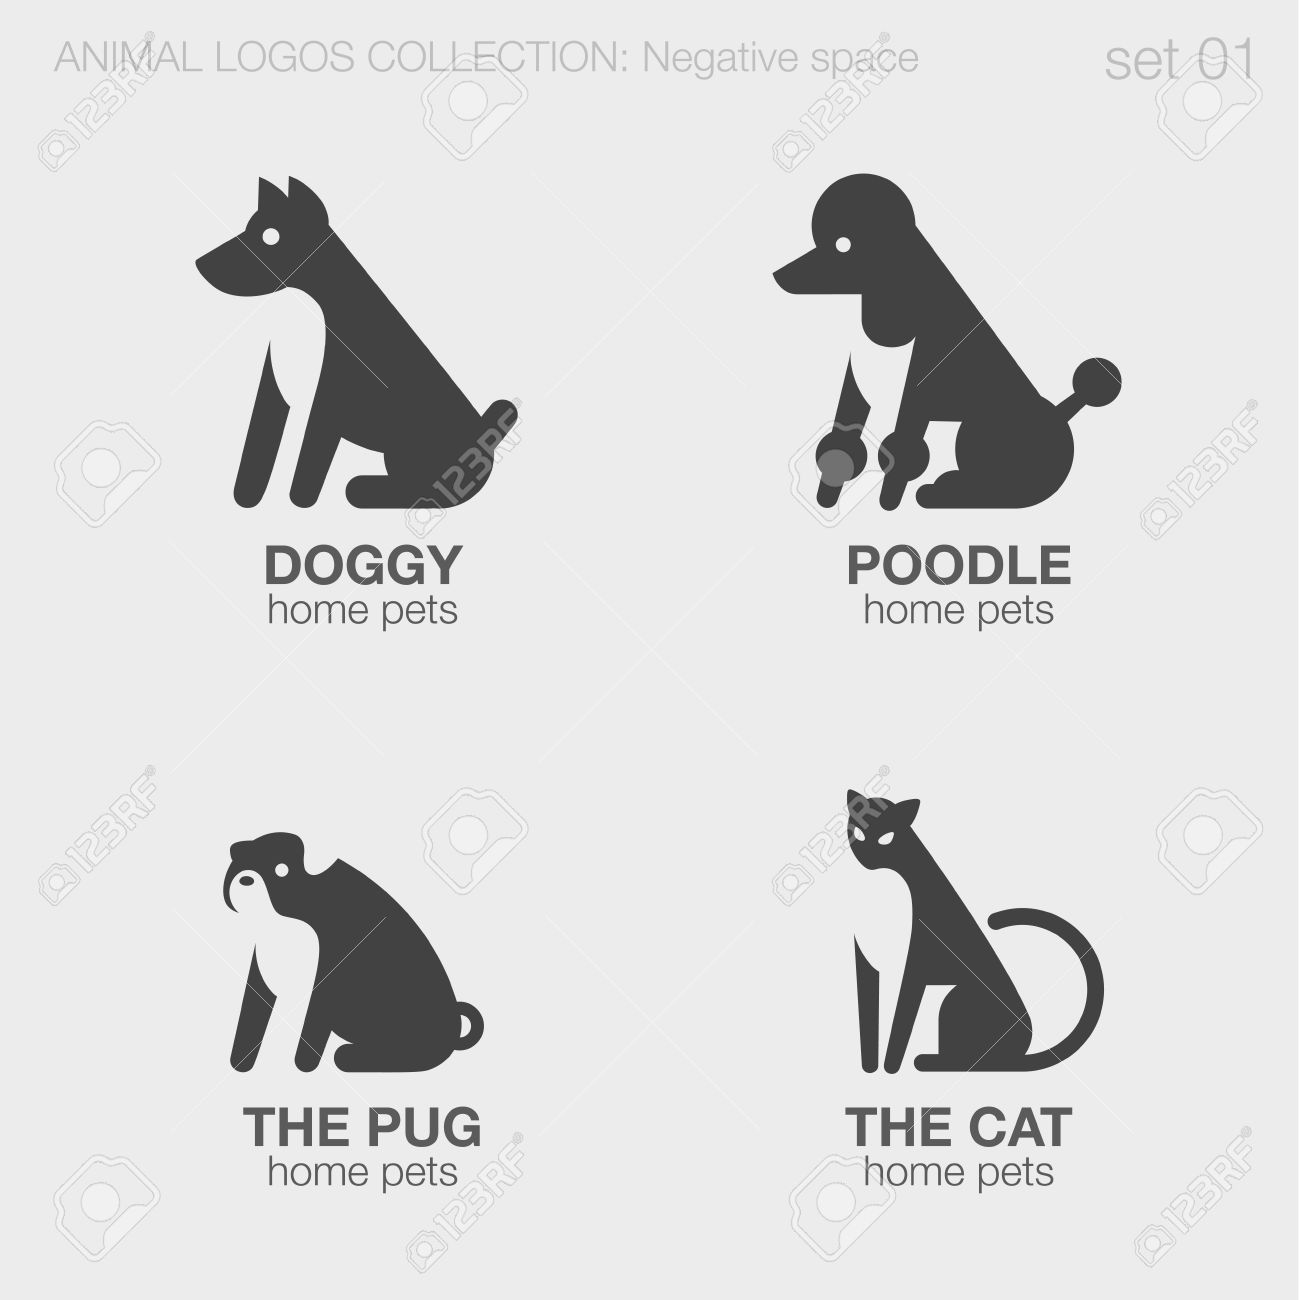 Home Pets Animals Logos Negative Space Style Design Vector Templates ...